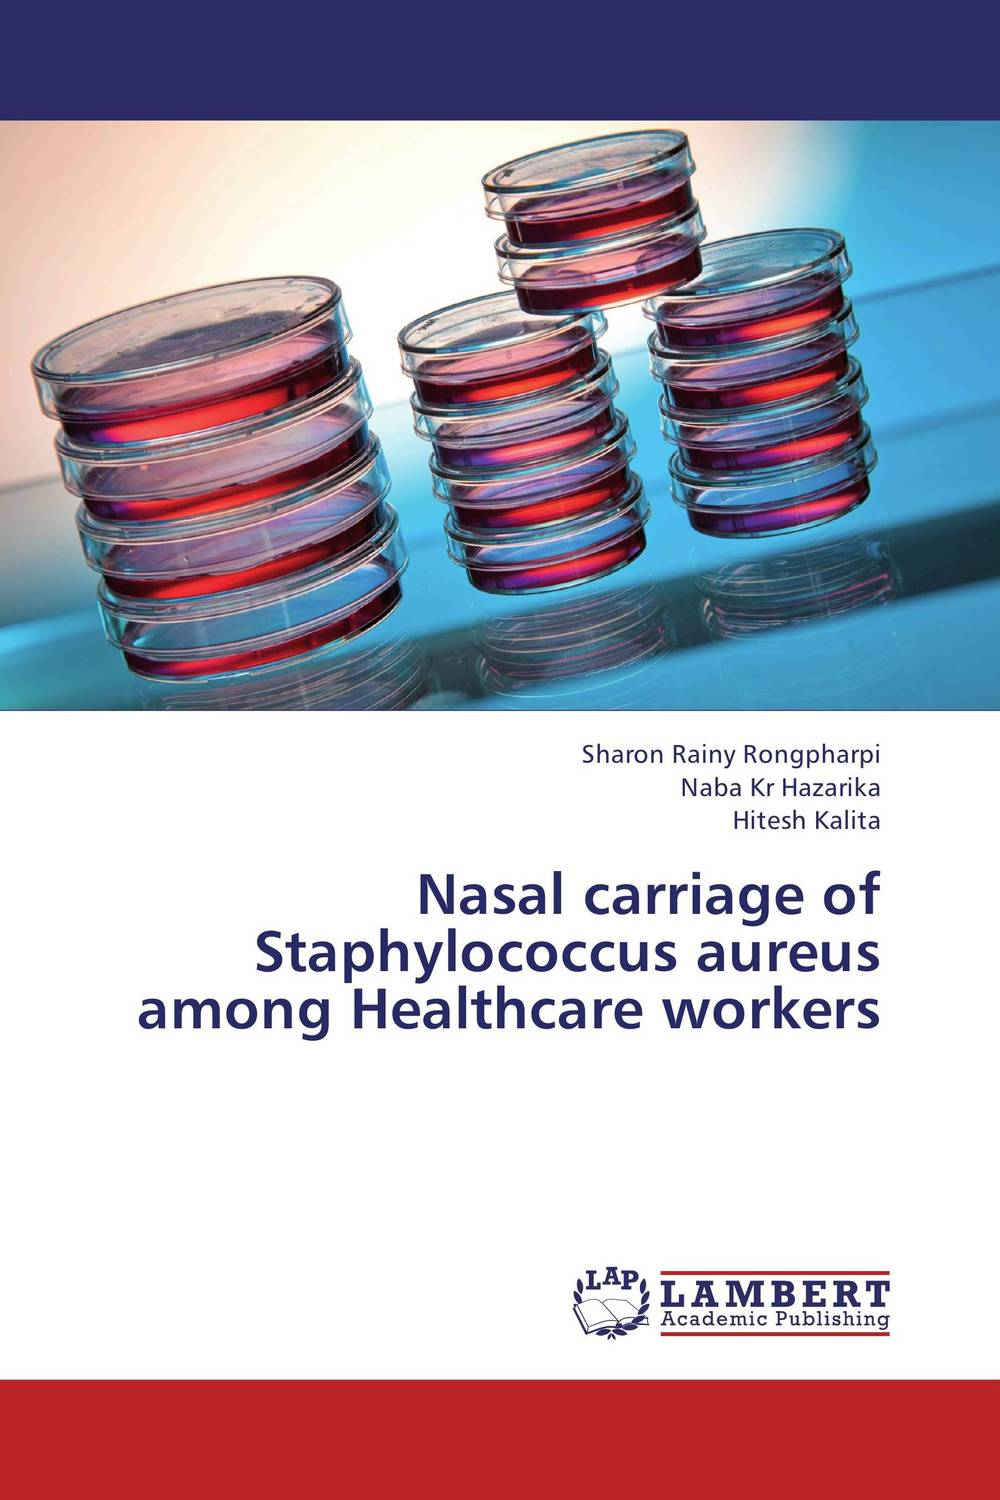 Nasal carriage of Staphylococcus aureus among Healthcare workers mrsa bacteraemia